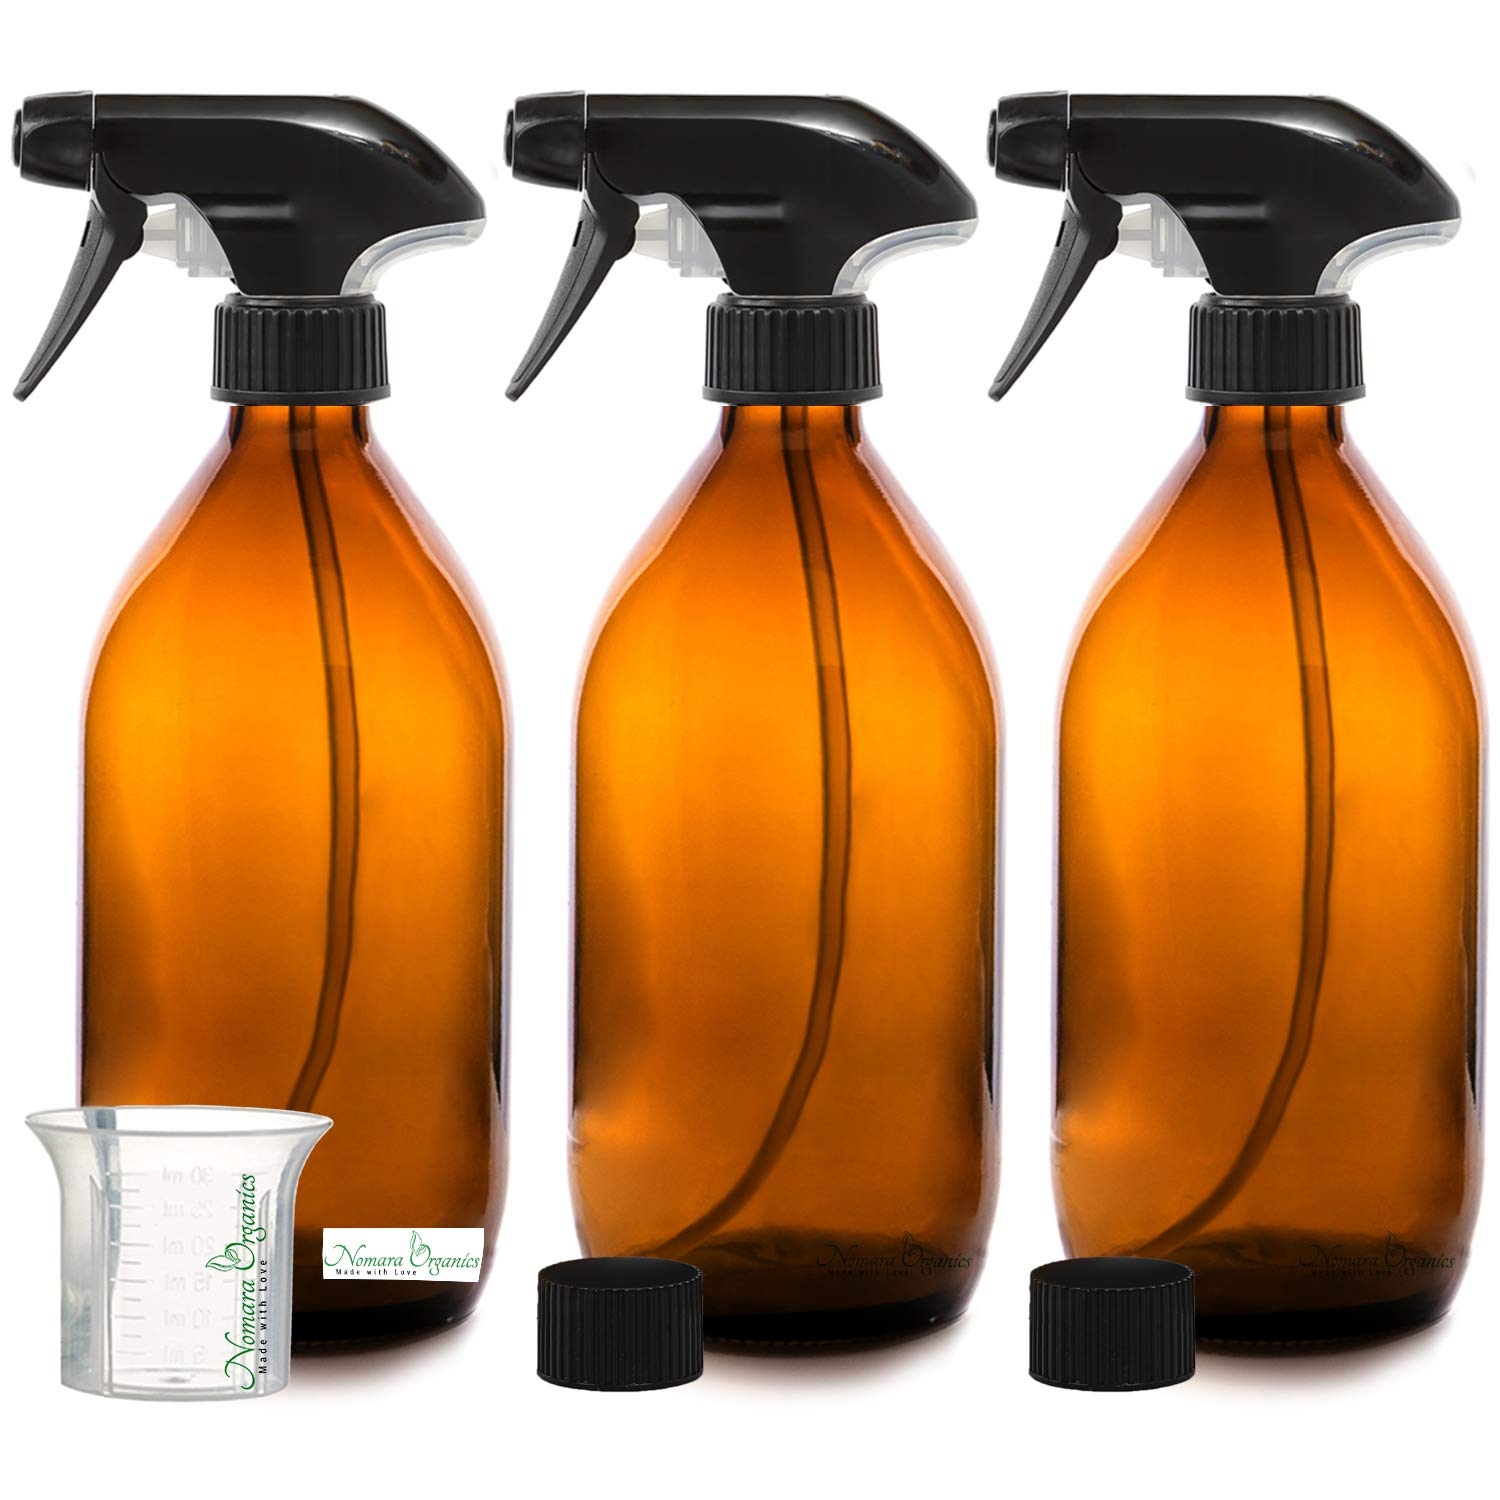 3 x 500ML BPA-FREE AMBER GLASS SPRAY BOTTLE by Nomara Organics. Pack of 3 Empty Bottles with Non-Drip, Fine Mist, BPA-FREE Trigger Pump/Atomizer + 1 BPA-Free Beaker + 2 Leak-Proof Caps. Multi-purpose, Re-usable, Eco-Friendly, Perfect for Outdoor, Indoor,